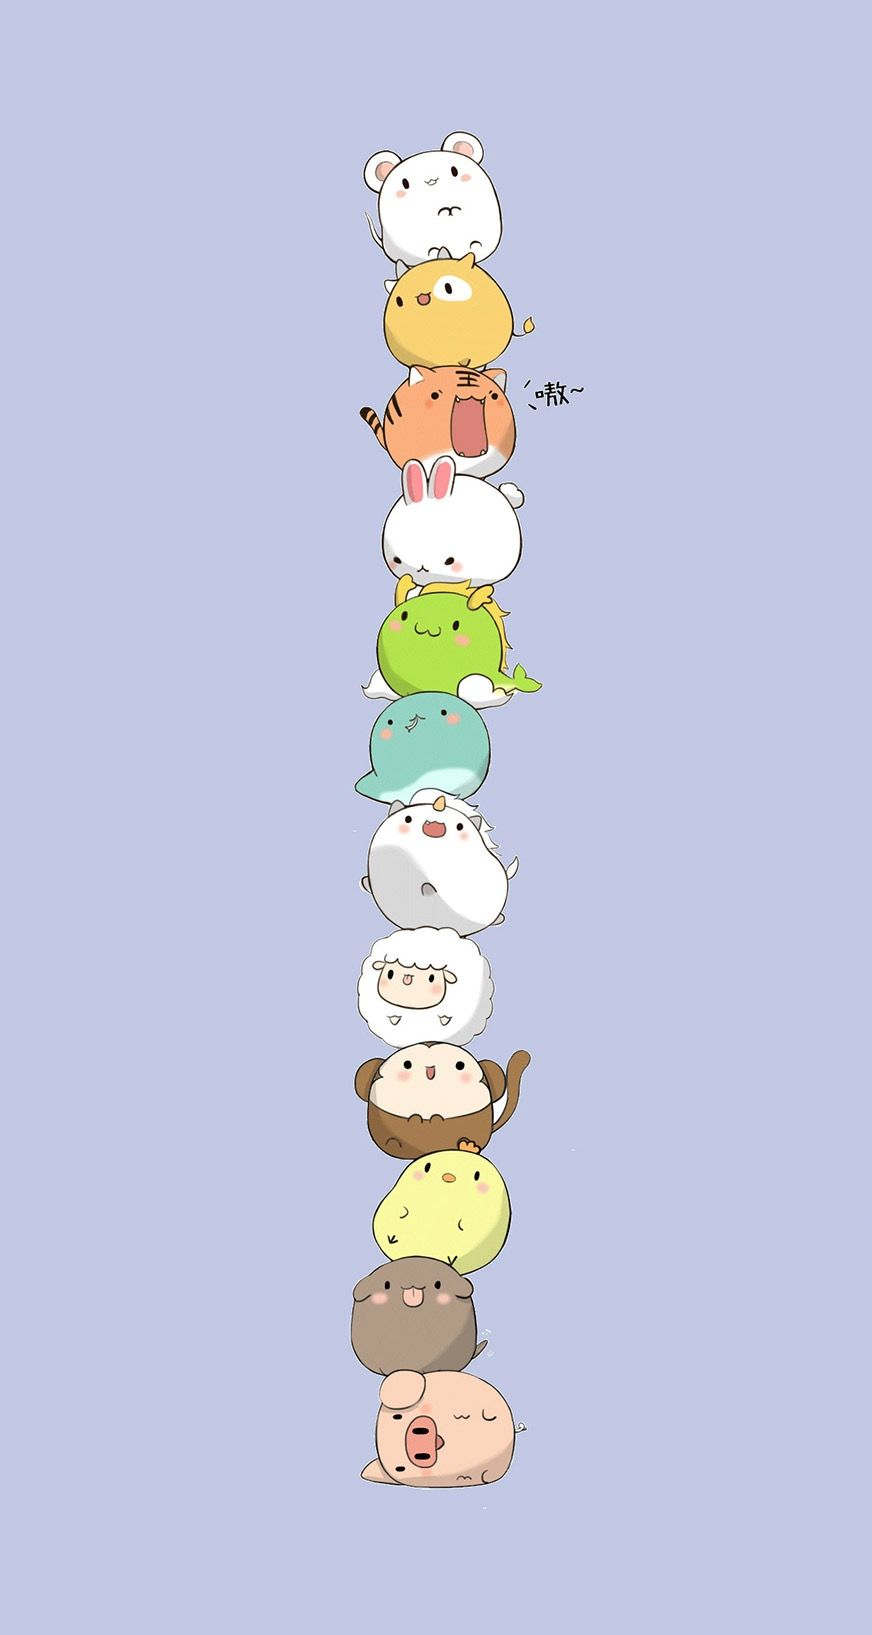 Pin By Xena On Dessins Cute Cartoon Wallpapers Download Cute Wallpapers Cute Cartoon Drawings